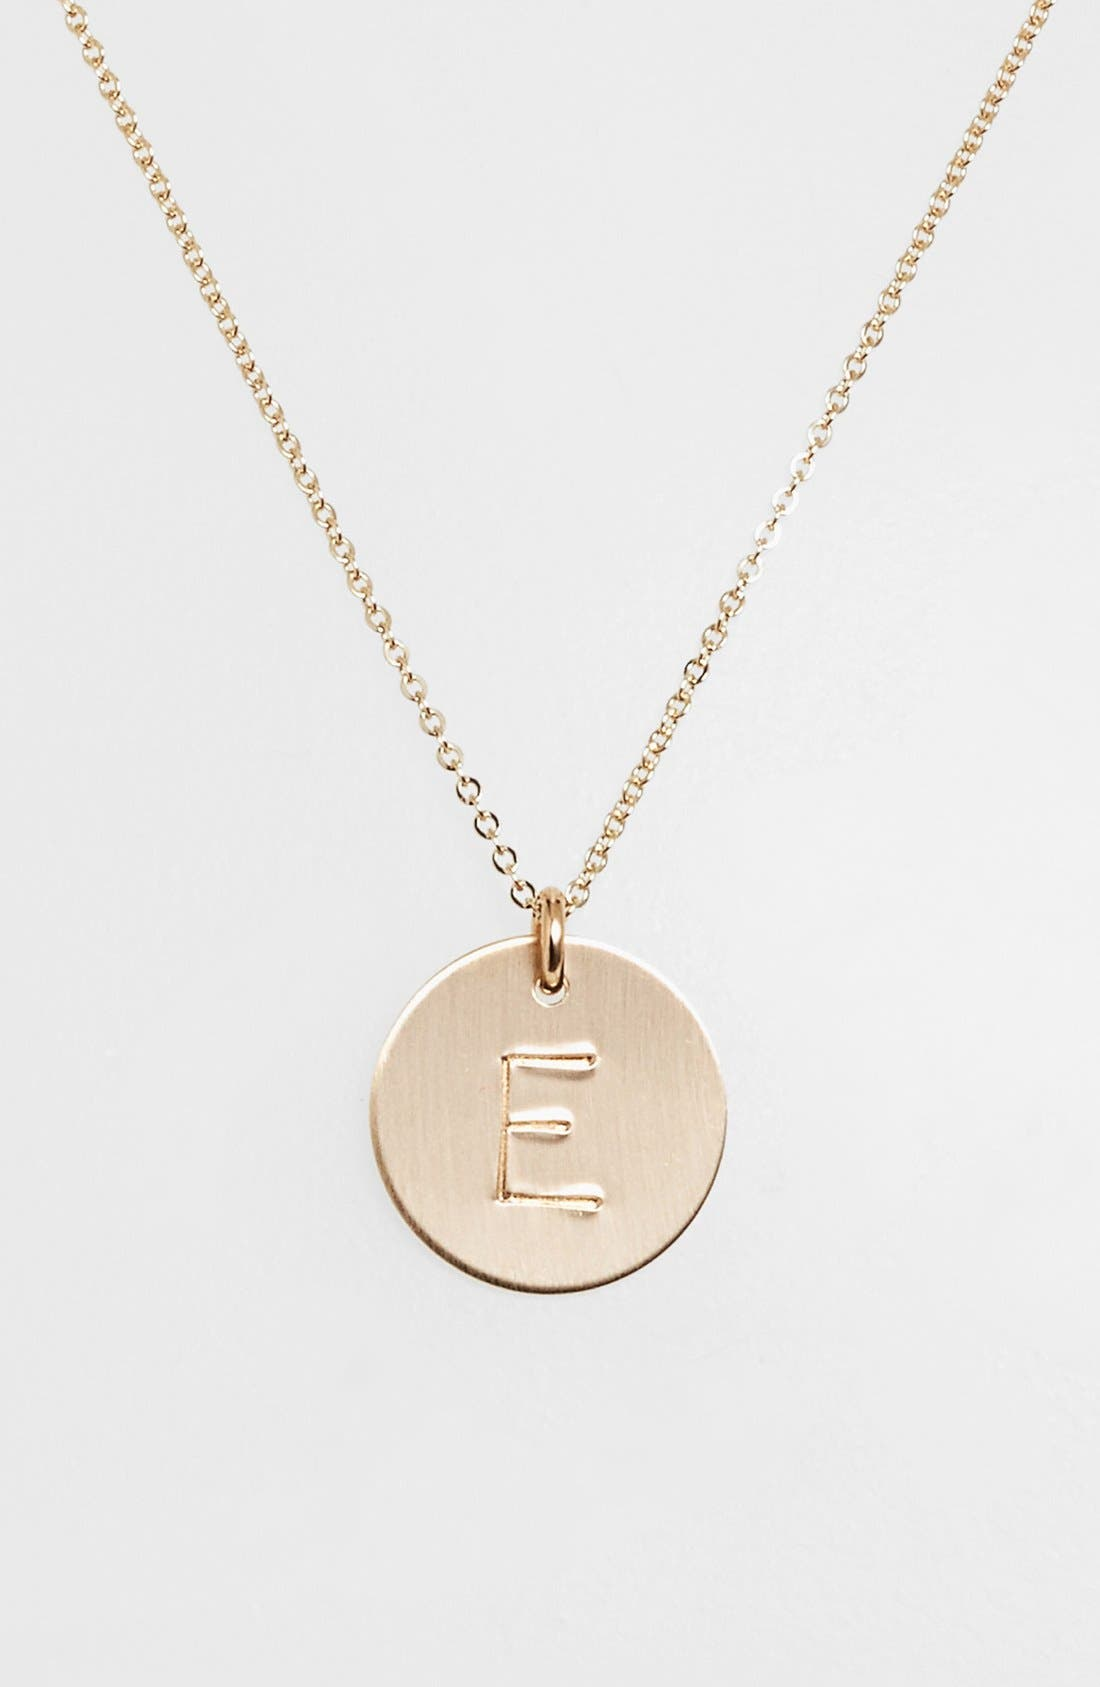 NASHELLE, 14k-Gold Fill Initial Disc Necklace, Main thumbnail 1, color, 14K GOLD FILL E